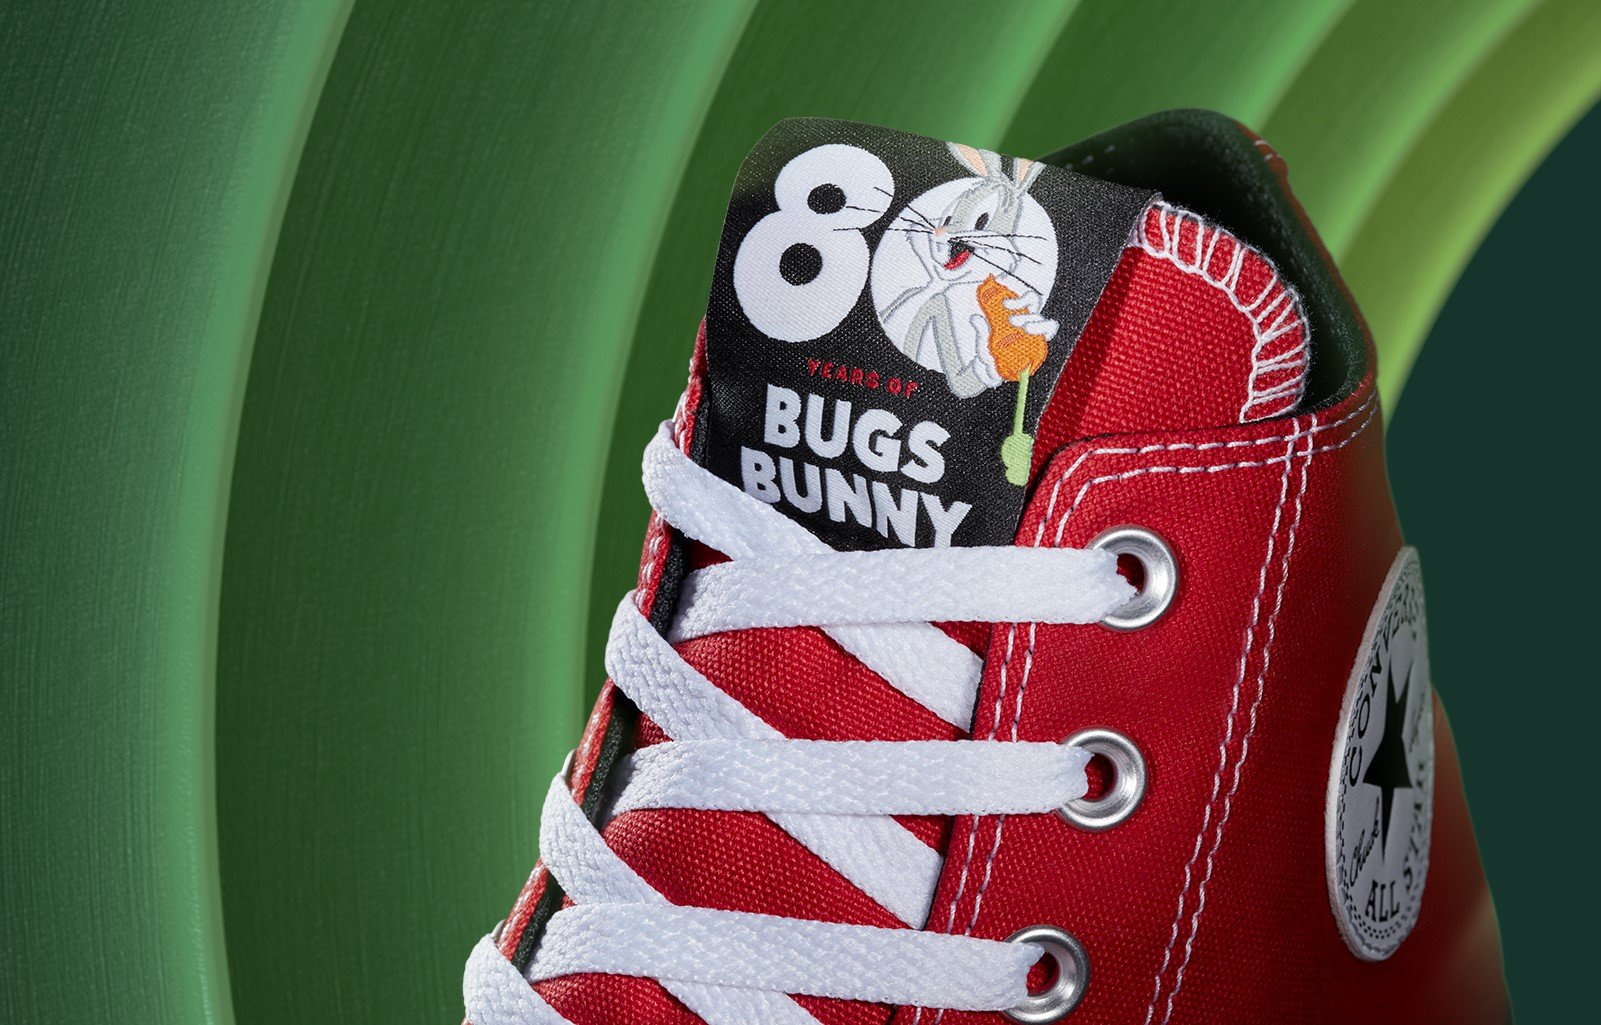 Converse celebrates Bugs Bunny's 80th anniversary with a shoe collection 14